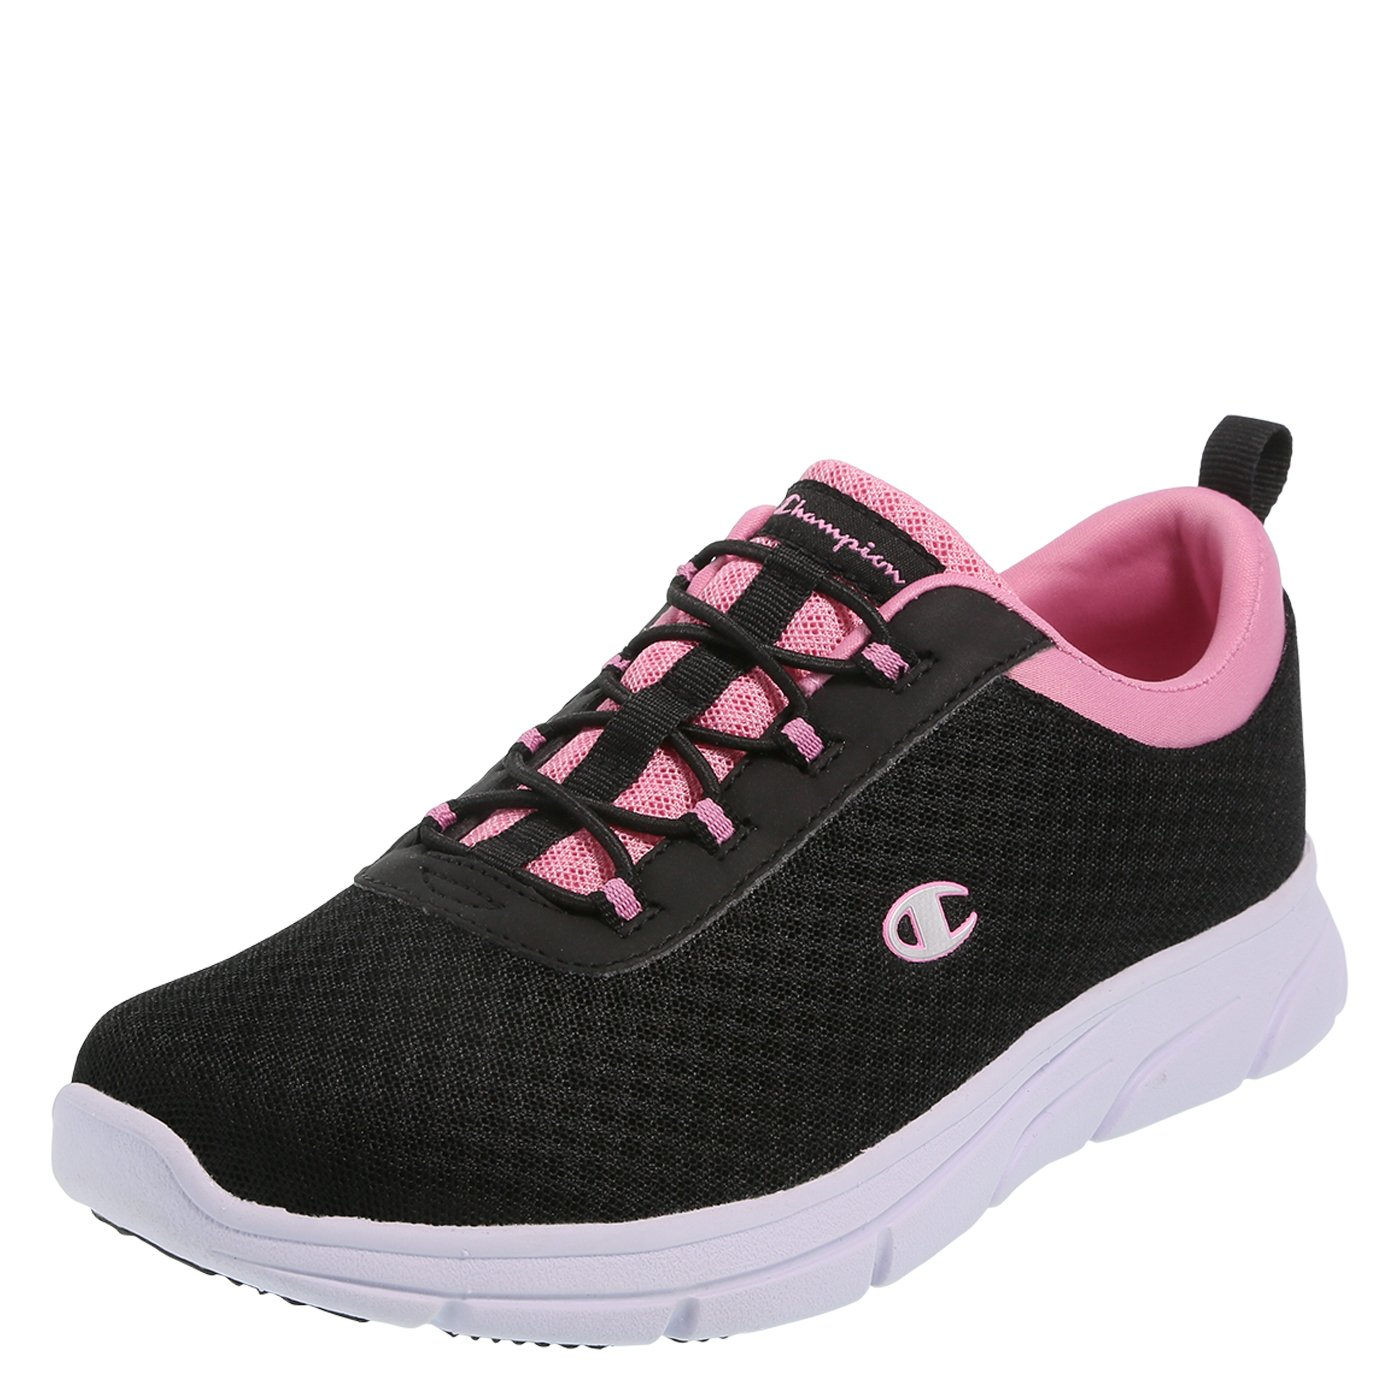 Champion Women's Sierra Step-in B07BNTDN1D 10 W US|Black Pink